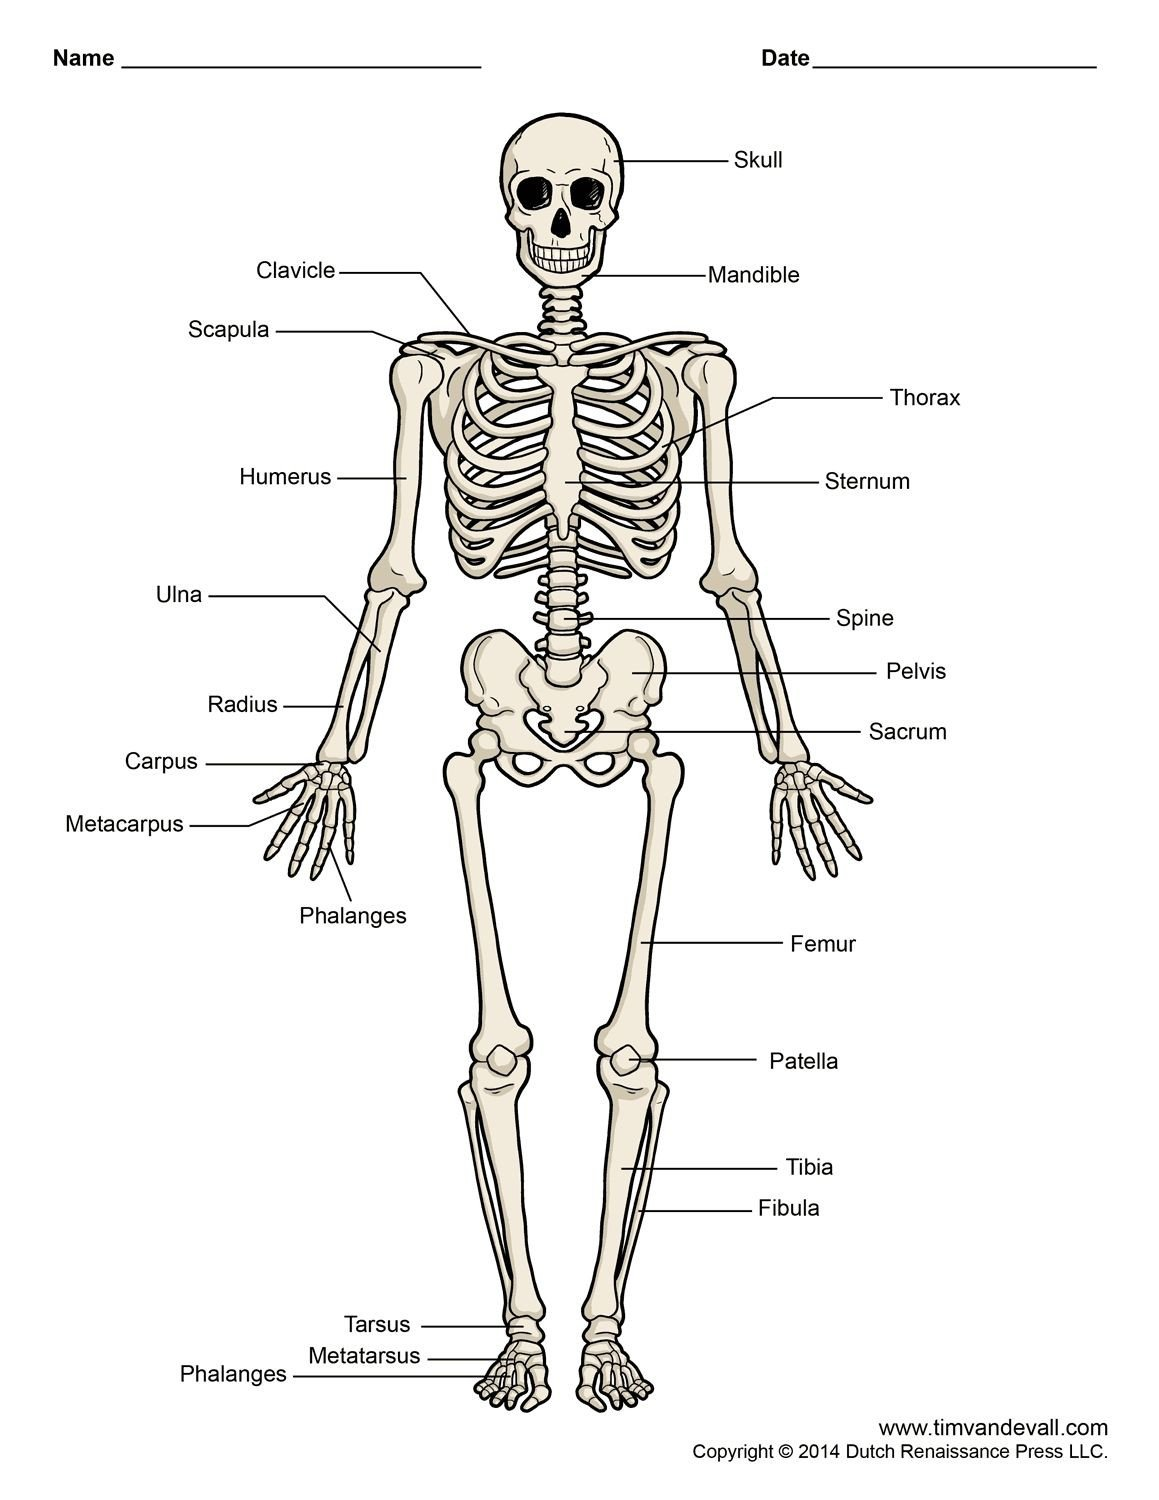 Blank Skeletal System Worksheet Skeletal System Worksheet Unlabeled